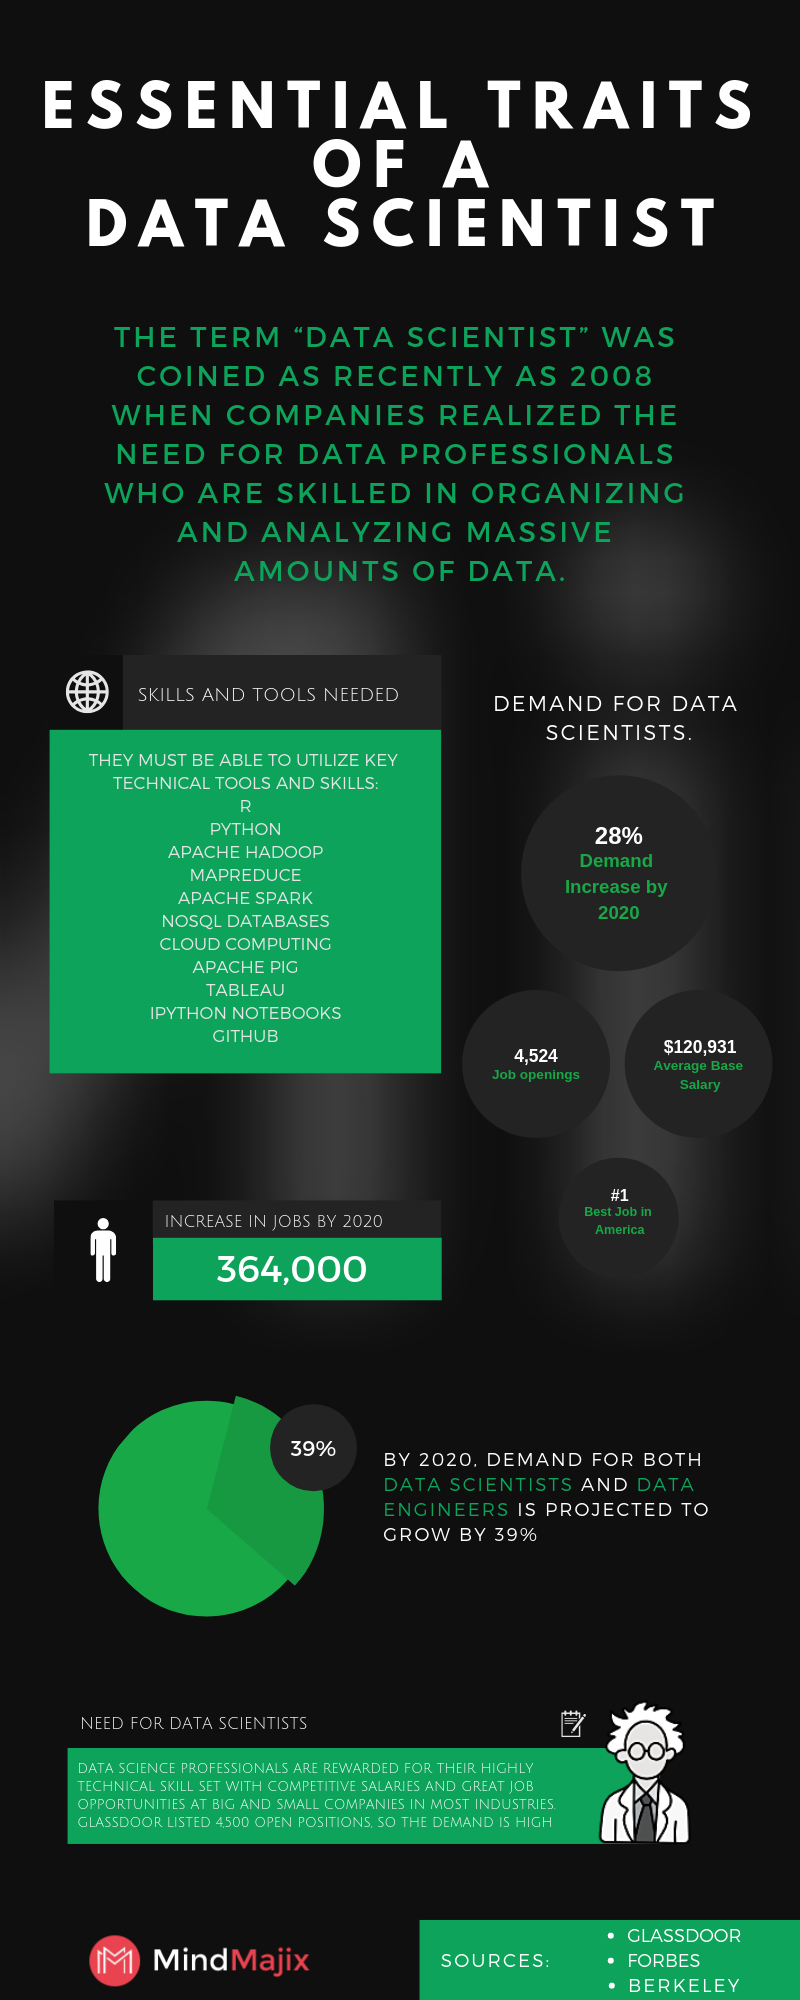 What Is Data Science? | Data Science Tutorial - MindMajix